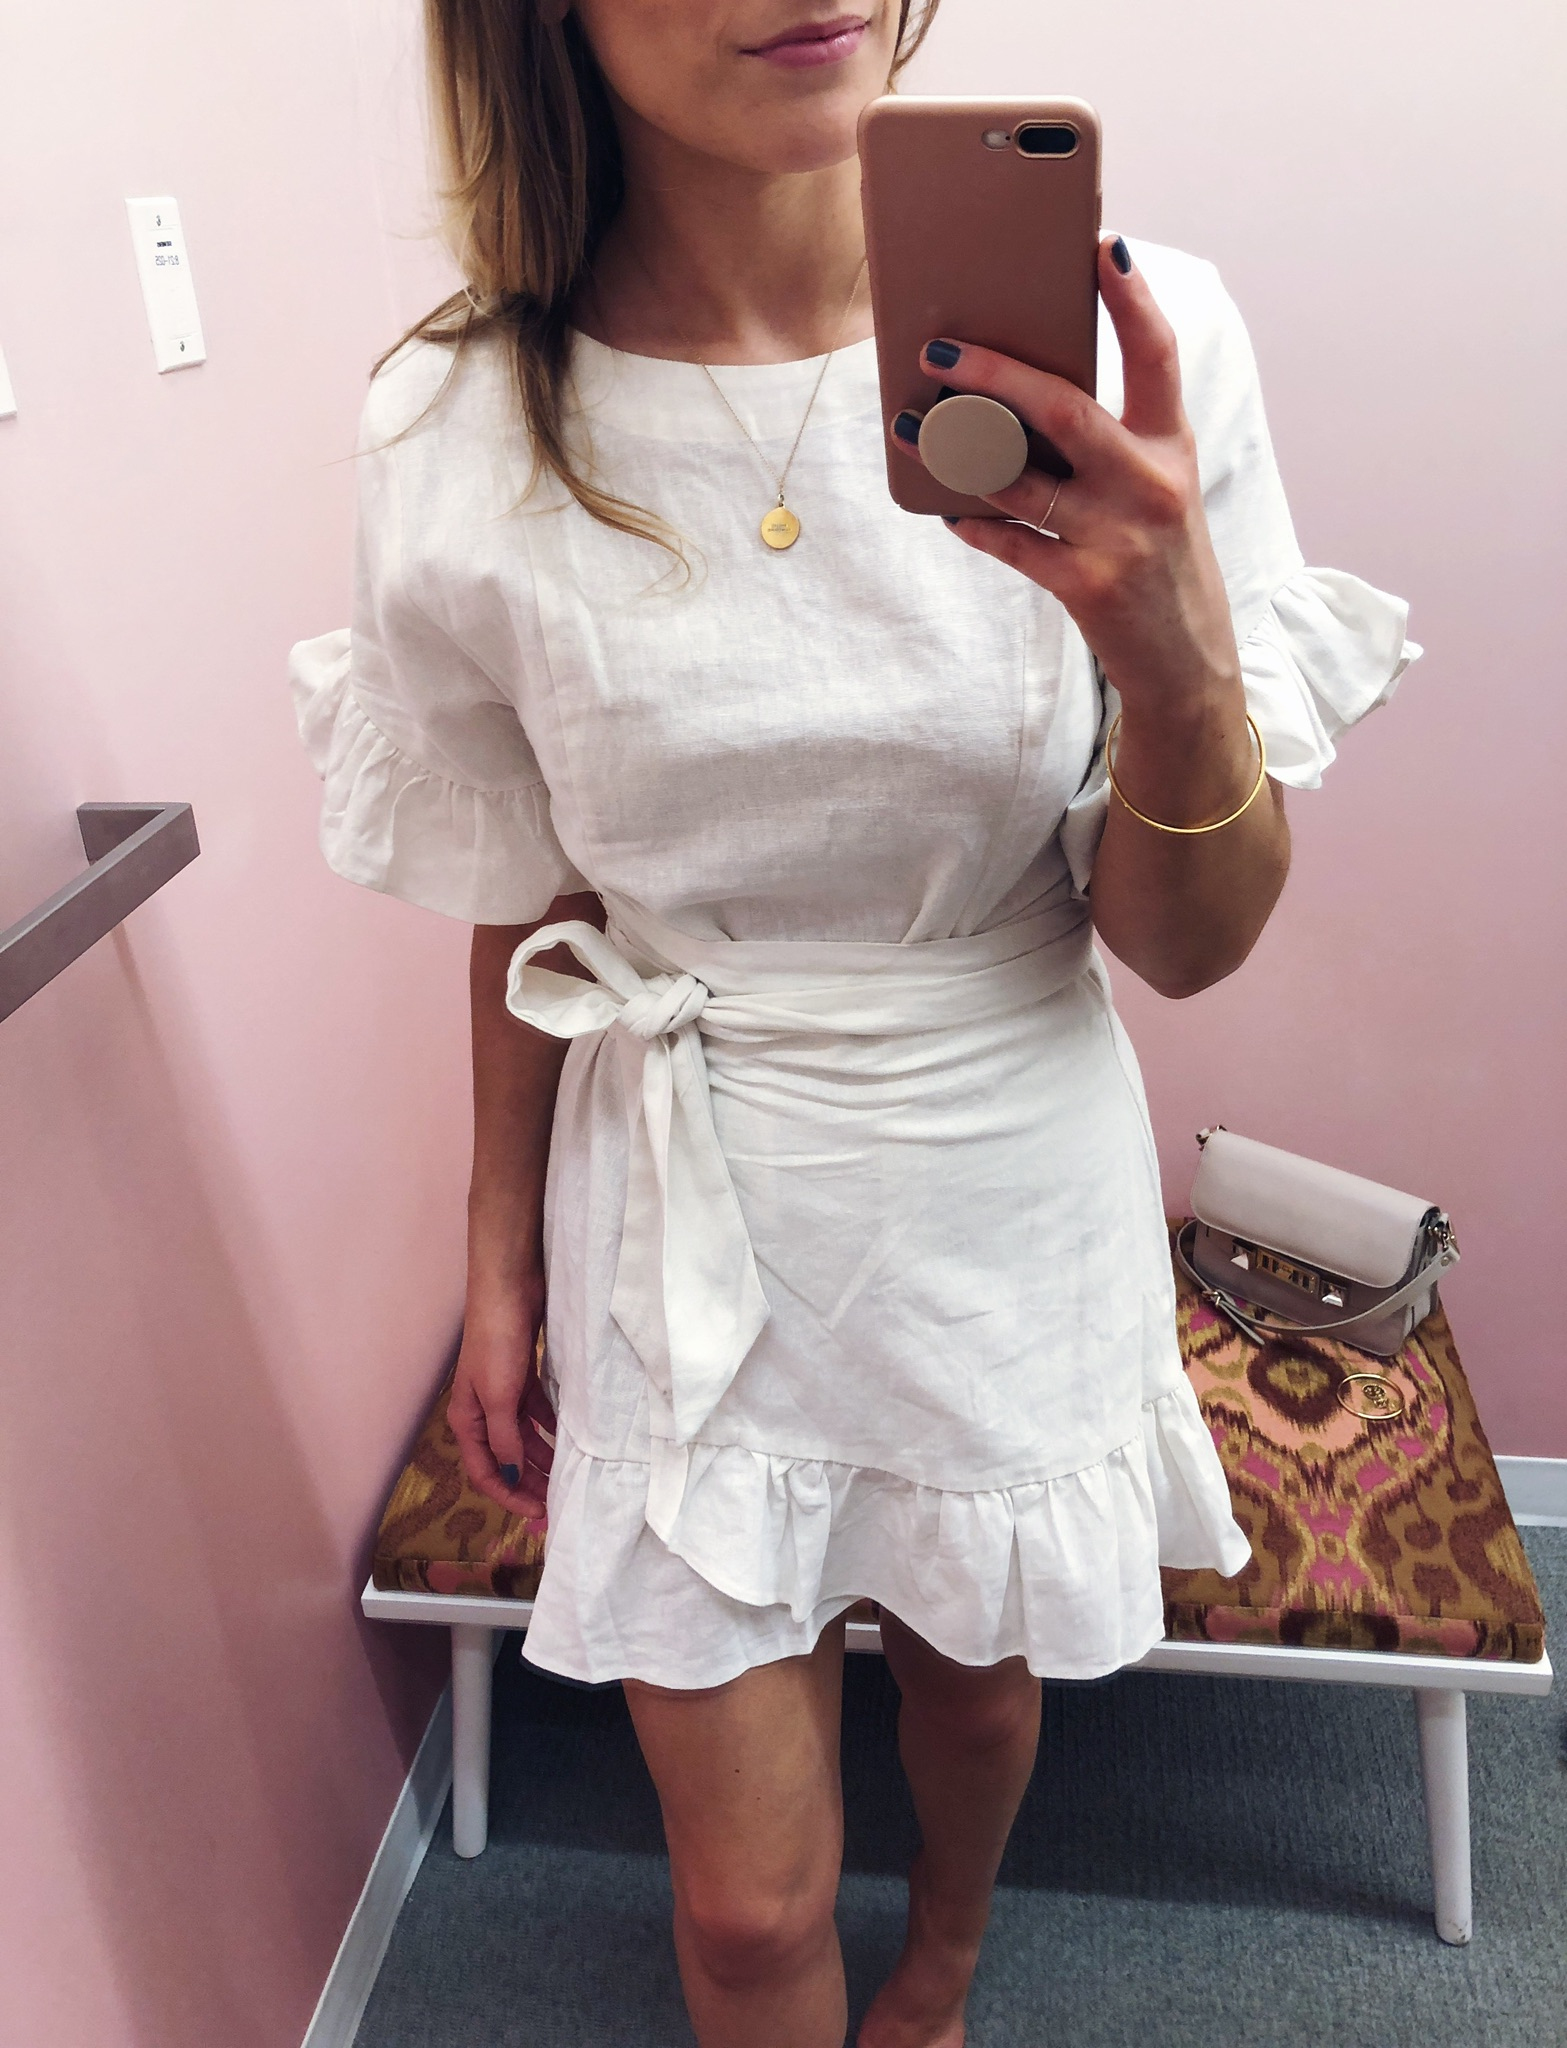 1 person, fitting room try on, girl in white dress